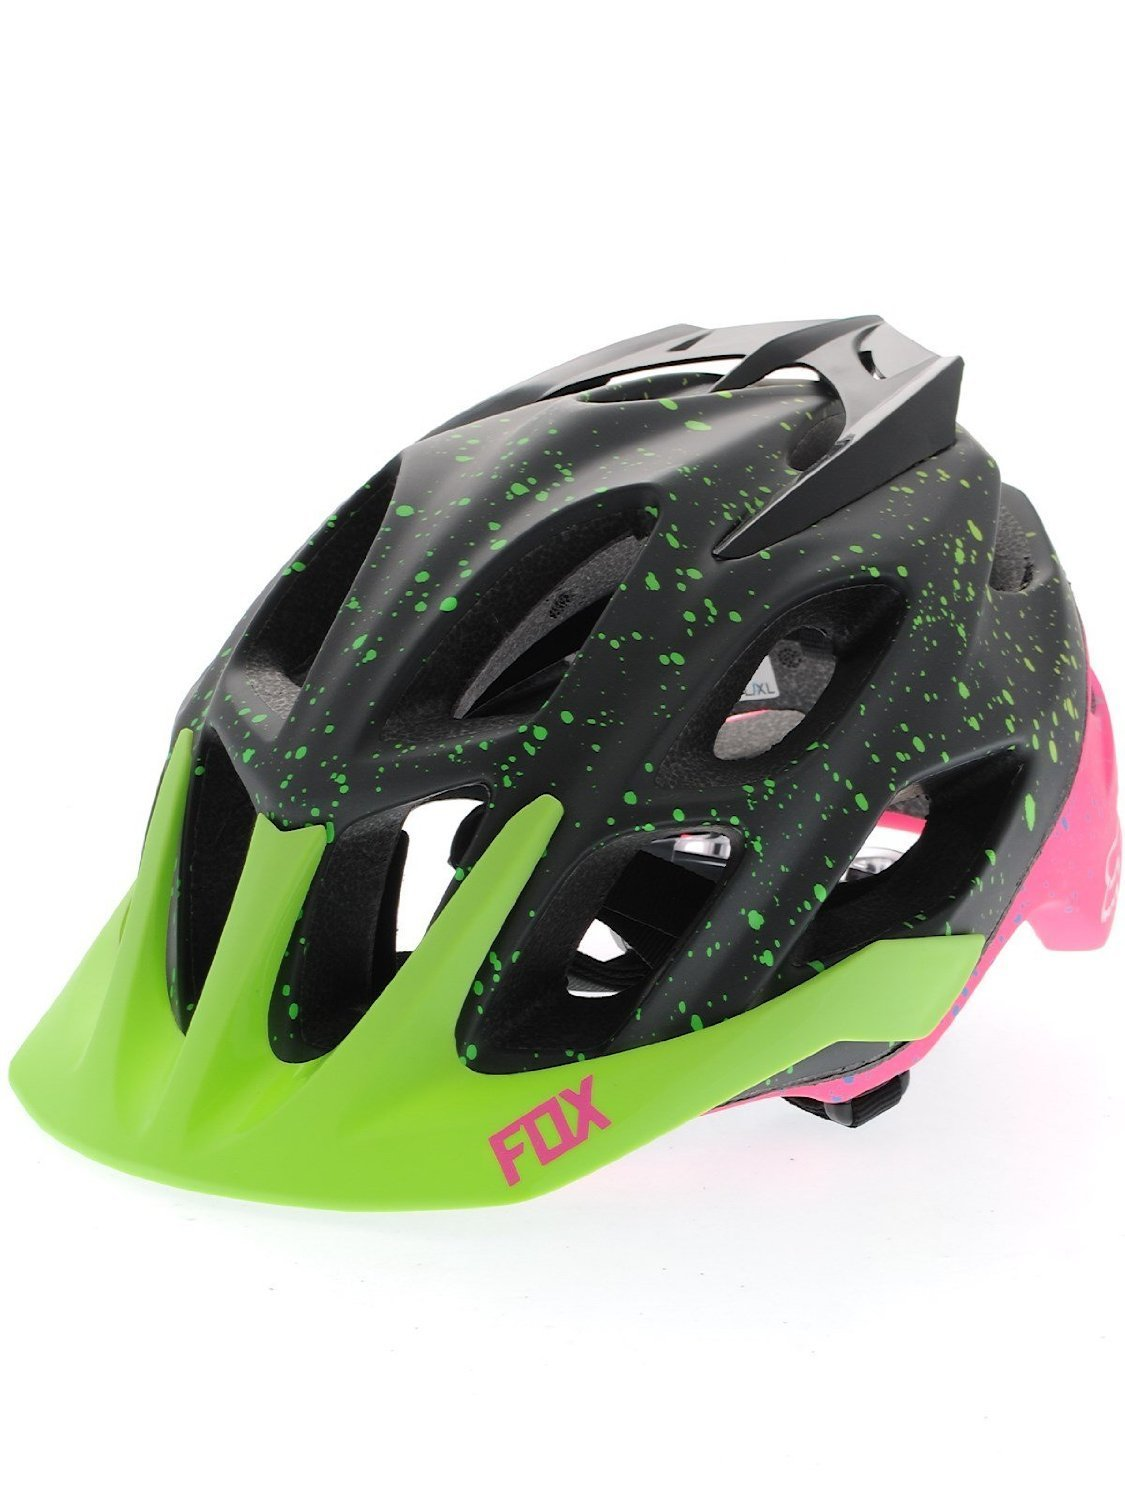 Small Fox Racing Bicycle Helmets